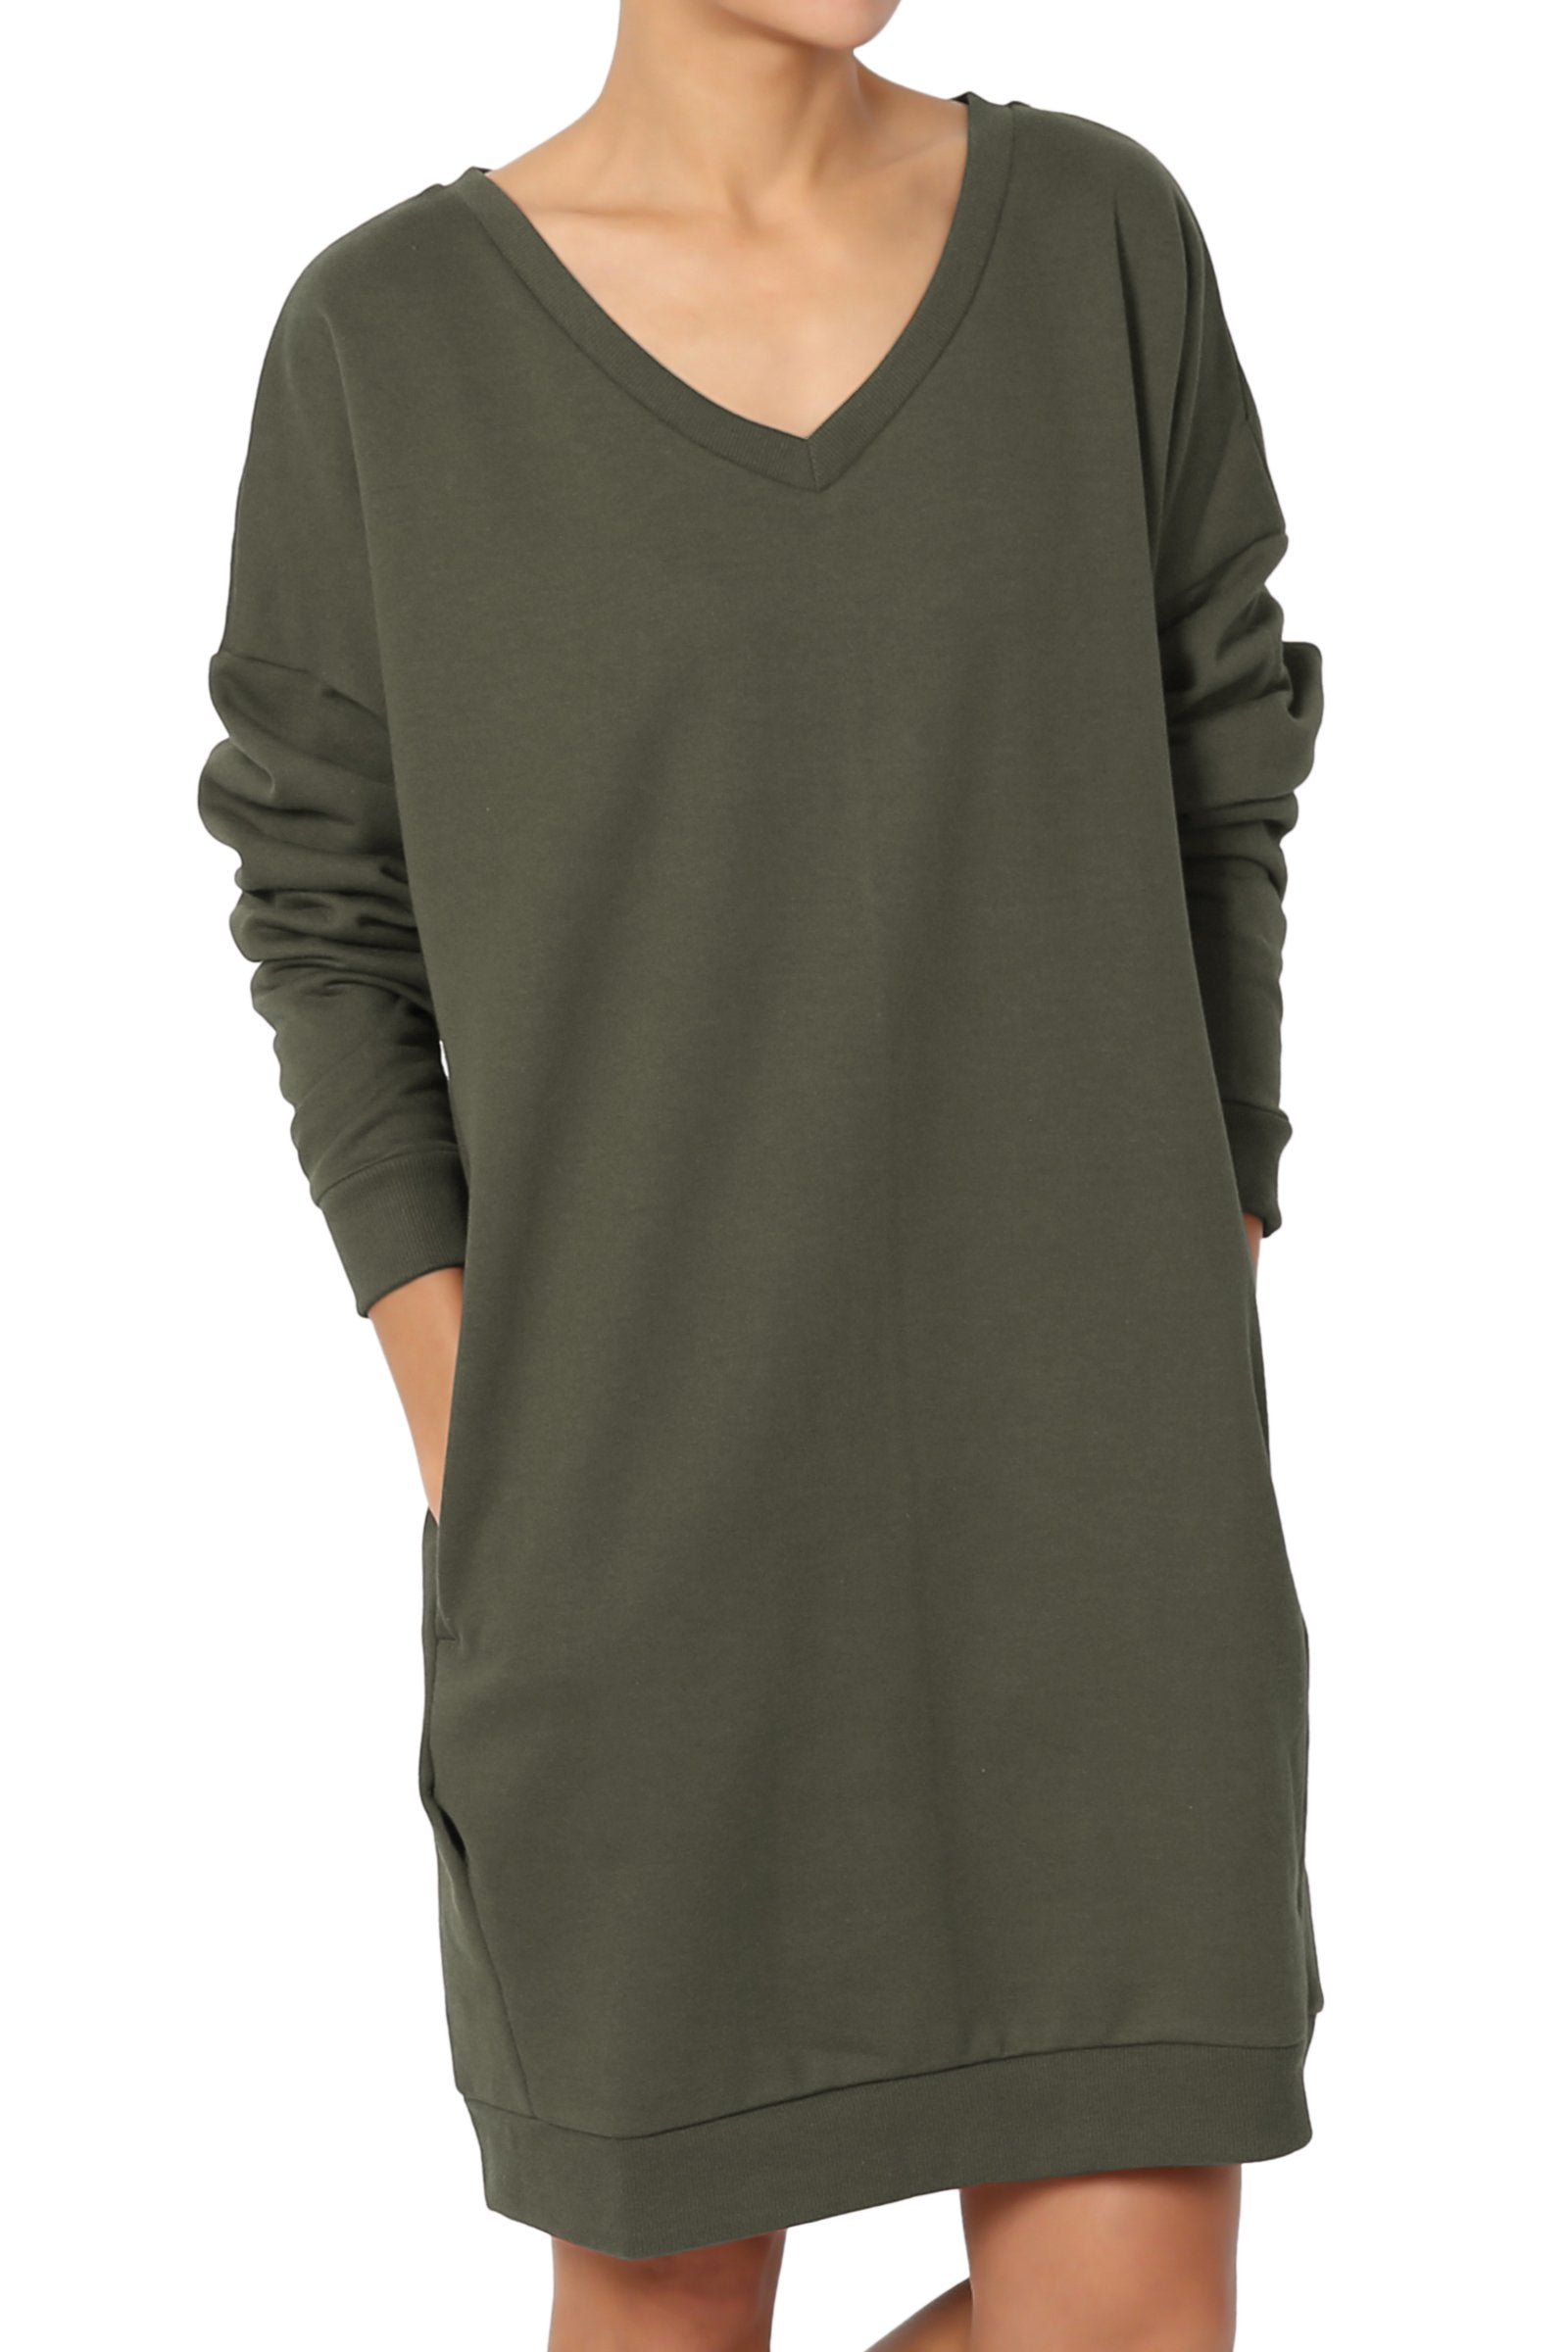 TheMogan Women's Casual V-Neck Pocket Loose Sweatshirt Tunic Olive M/L - wiihuu